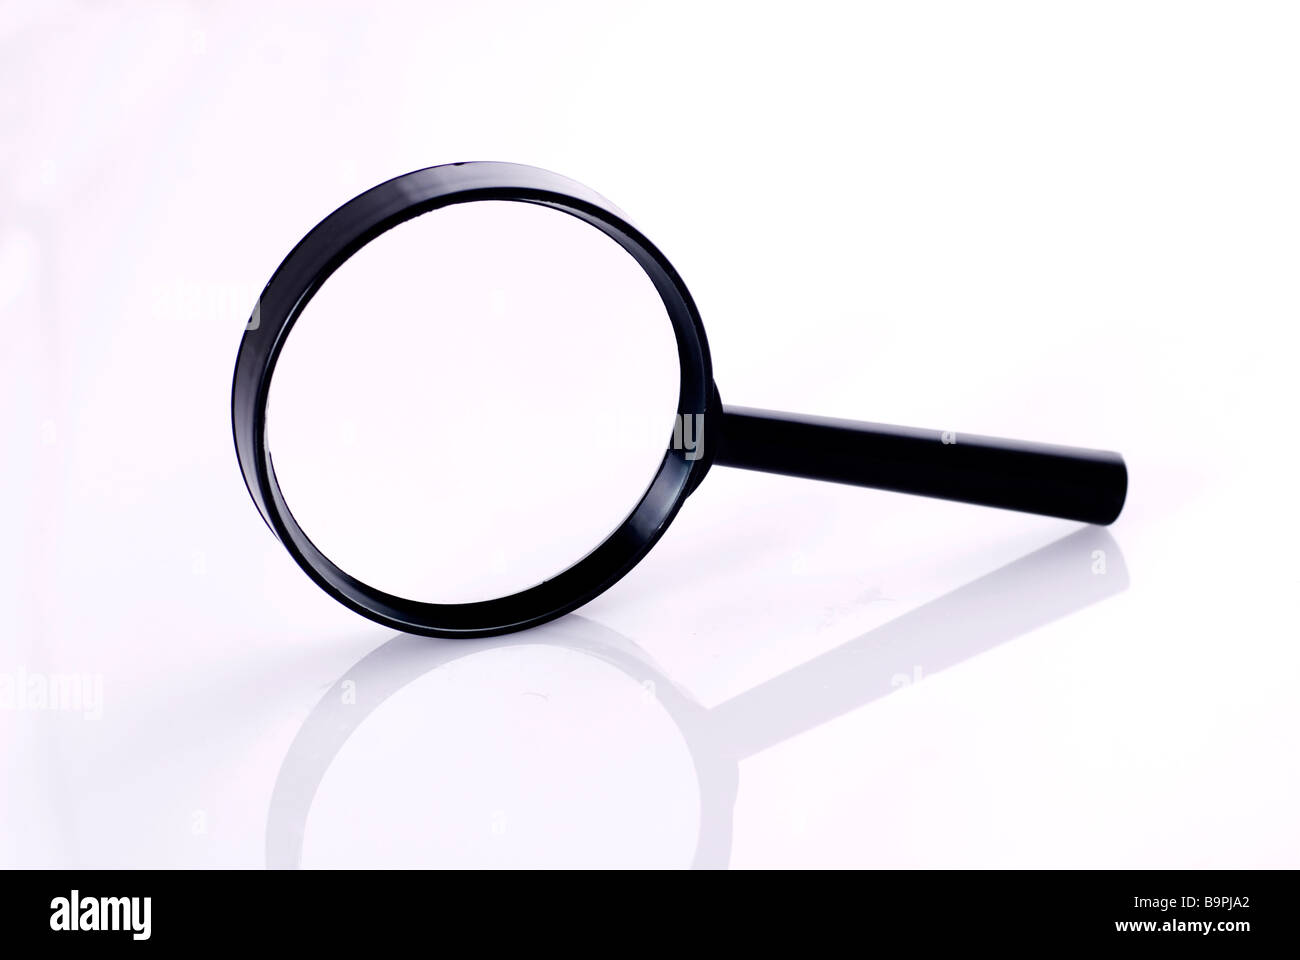 Side view of a magnifying glass on a white background - Stock Image